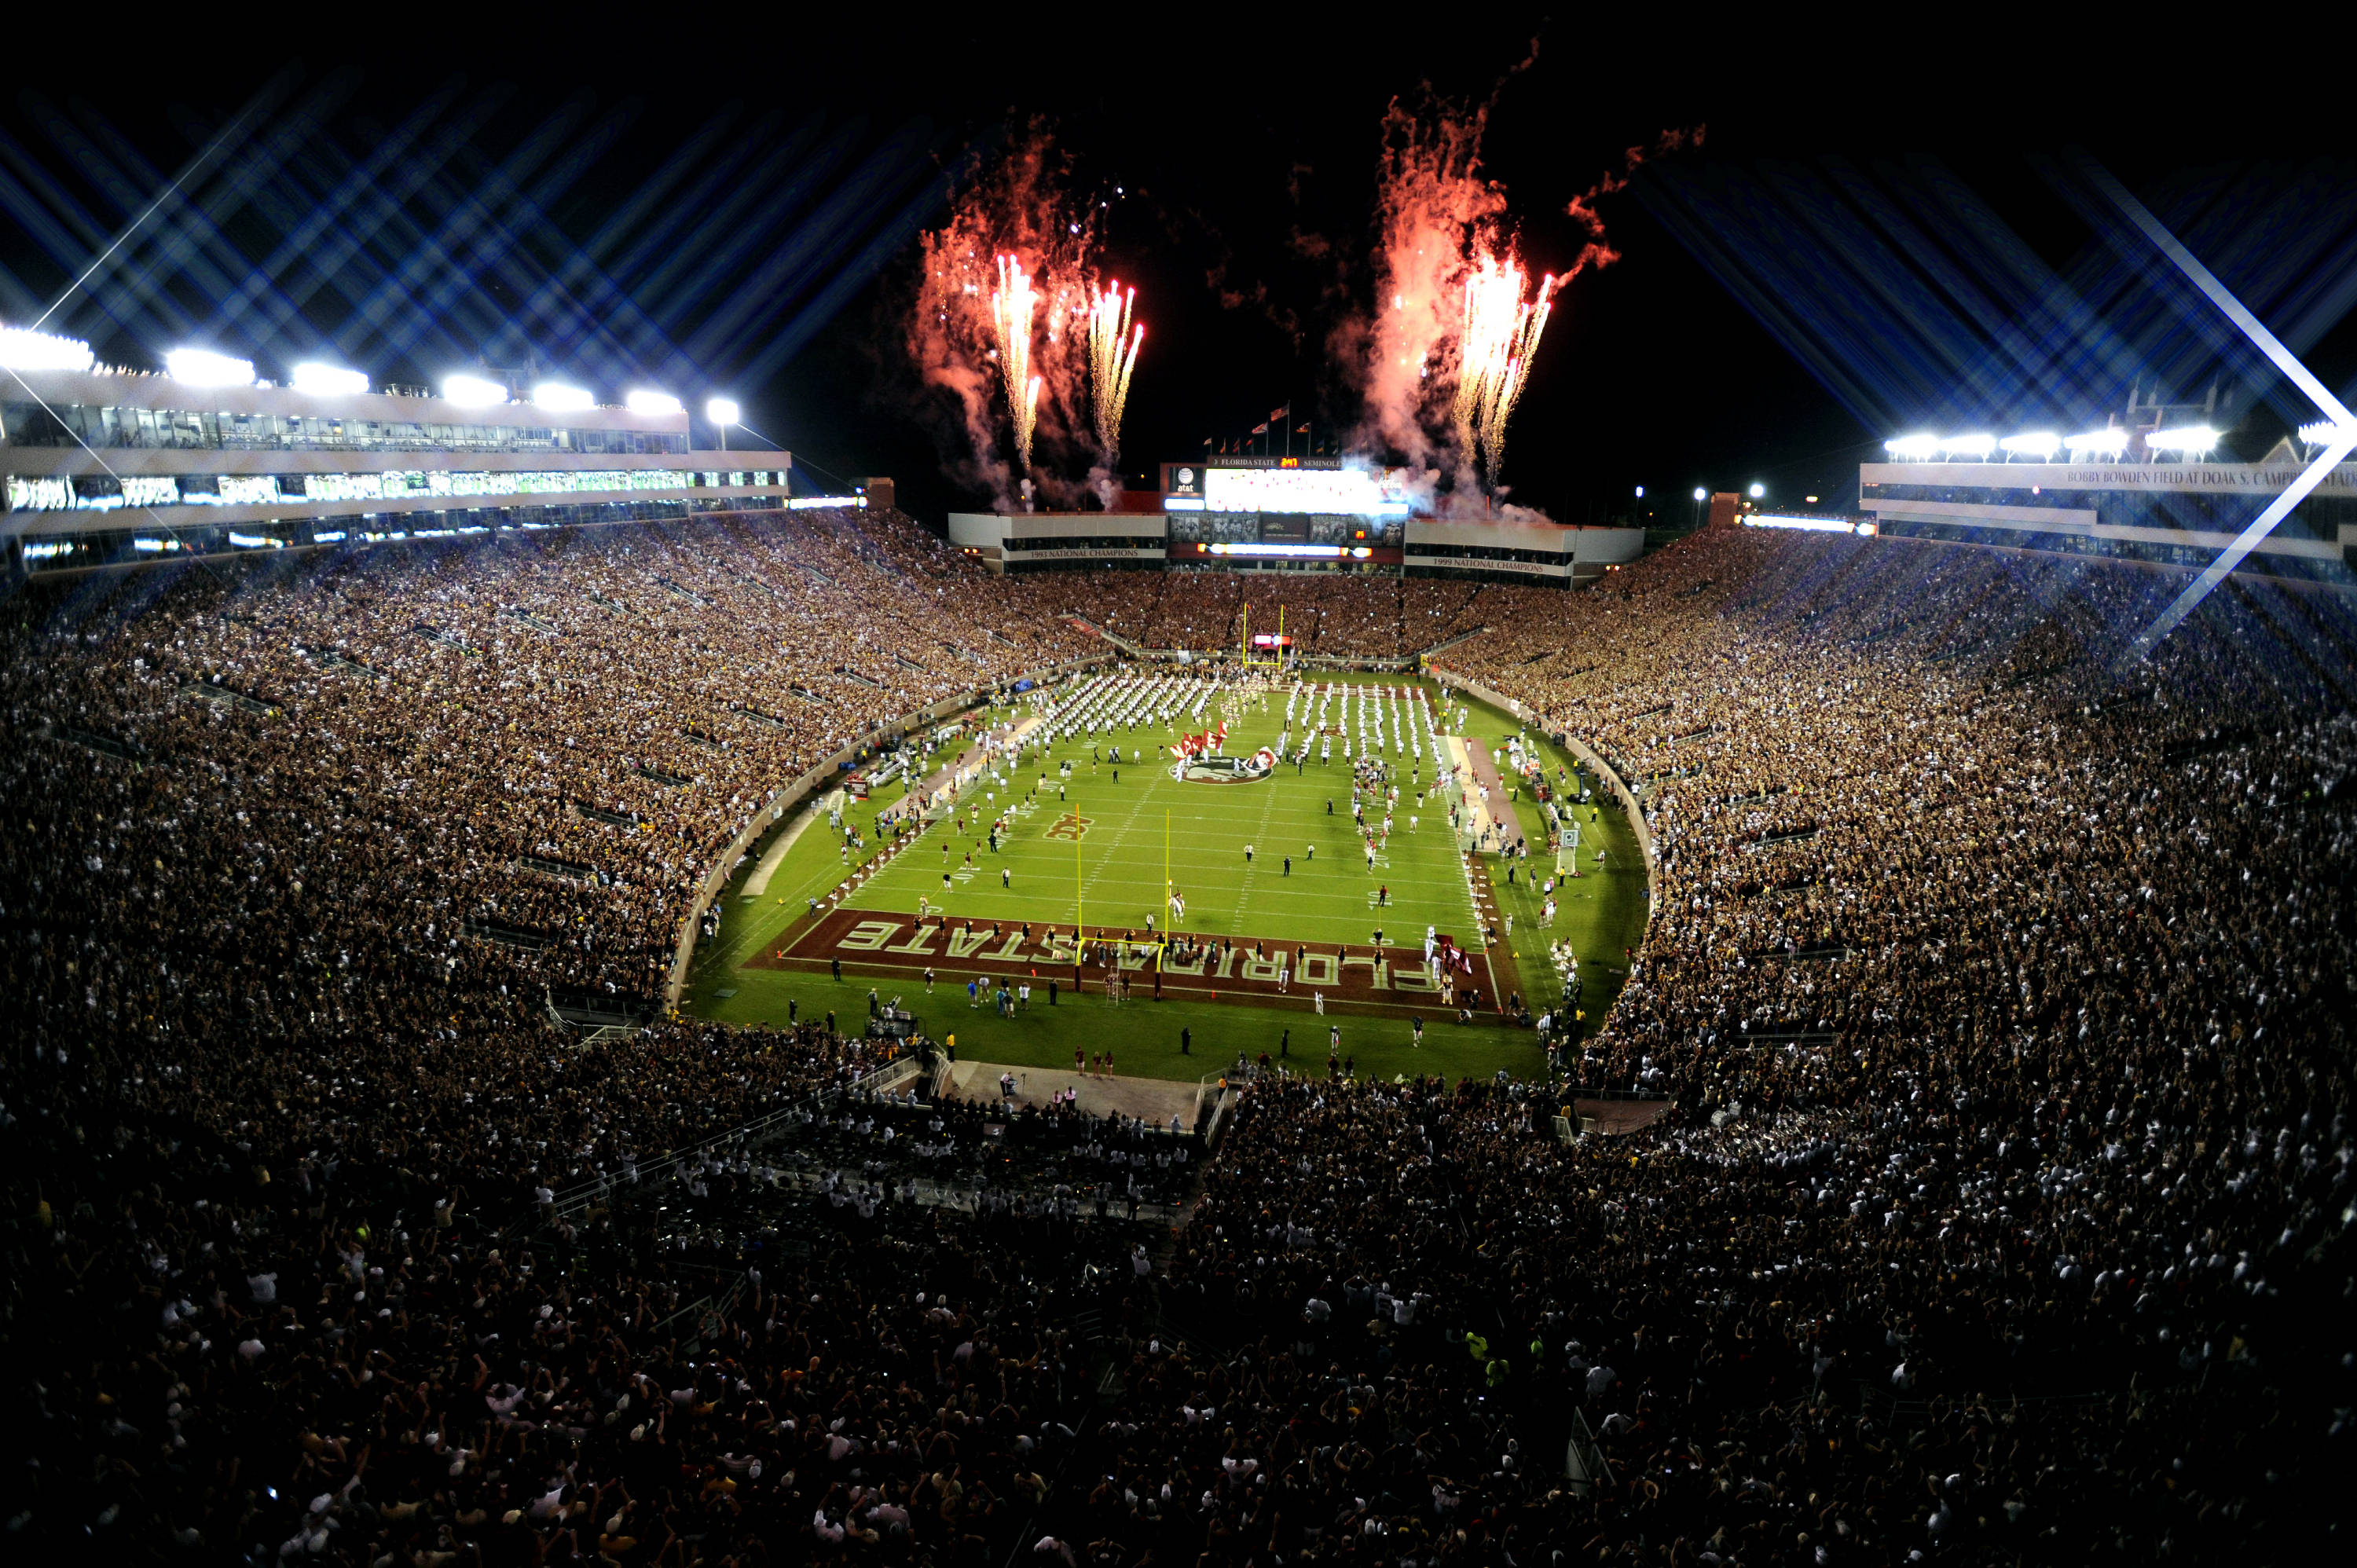 As we look back on the 2011 season, we remember all the best moments from this past season of Florida State Football.  There was truly no better atmosphere than when Oklahoma game into Tallahassee to take on the Seminoles on September 17th with ESPN's College GameDay on hand.